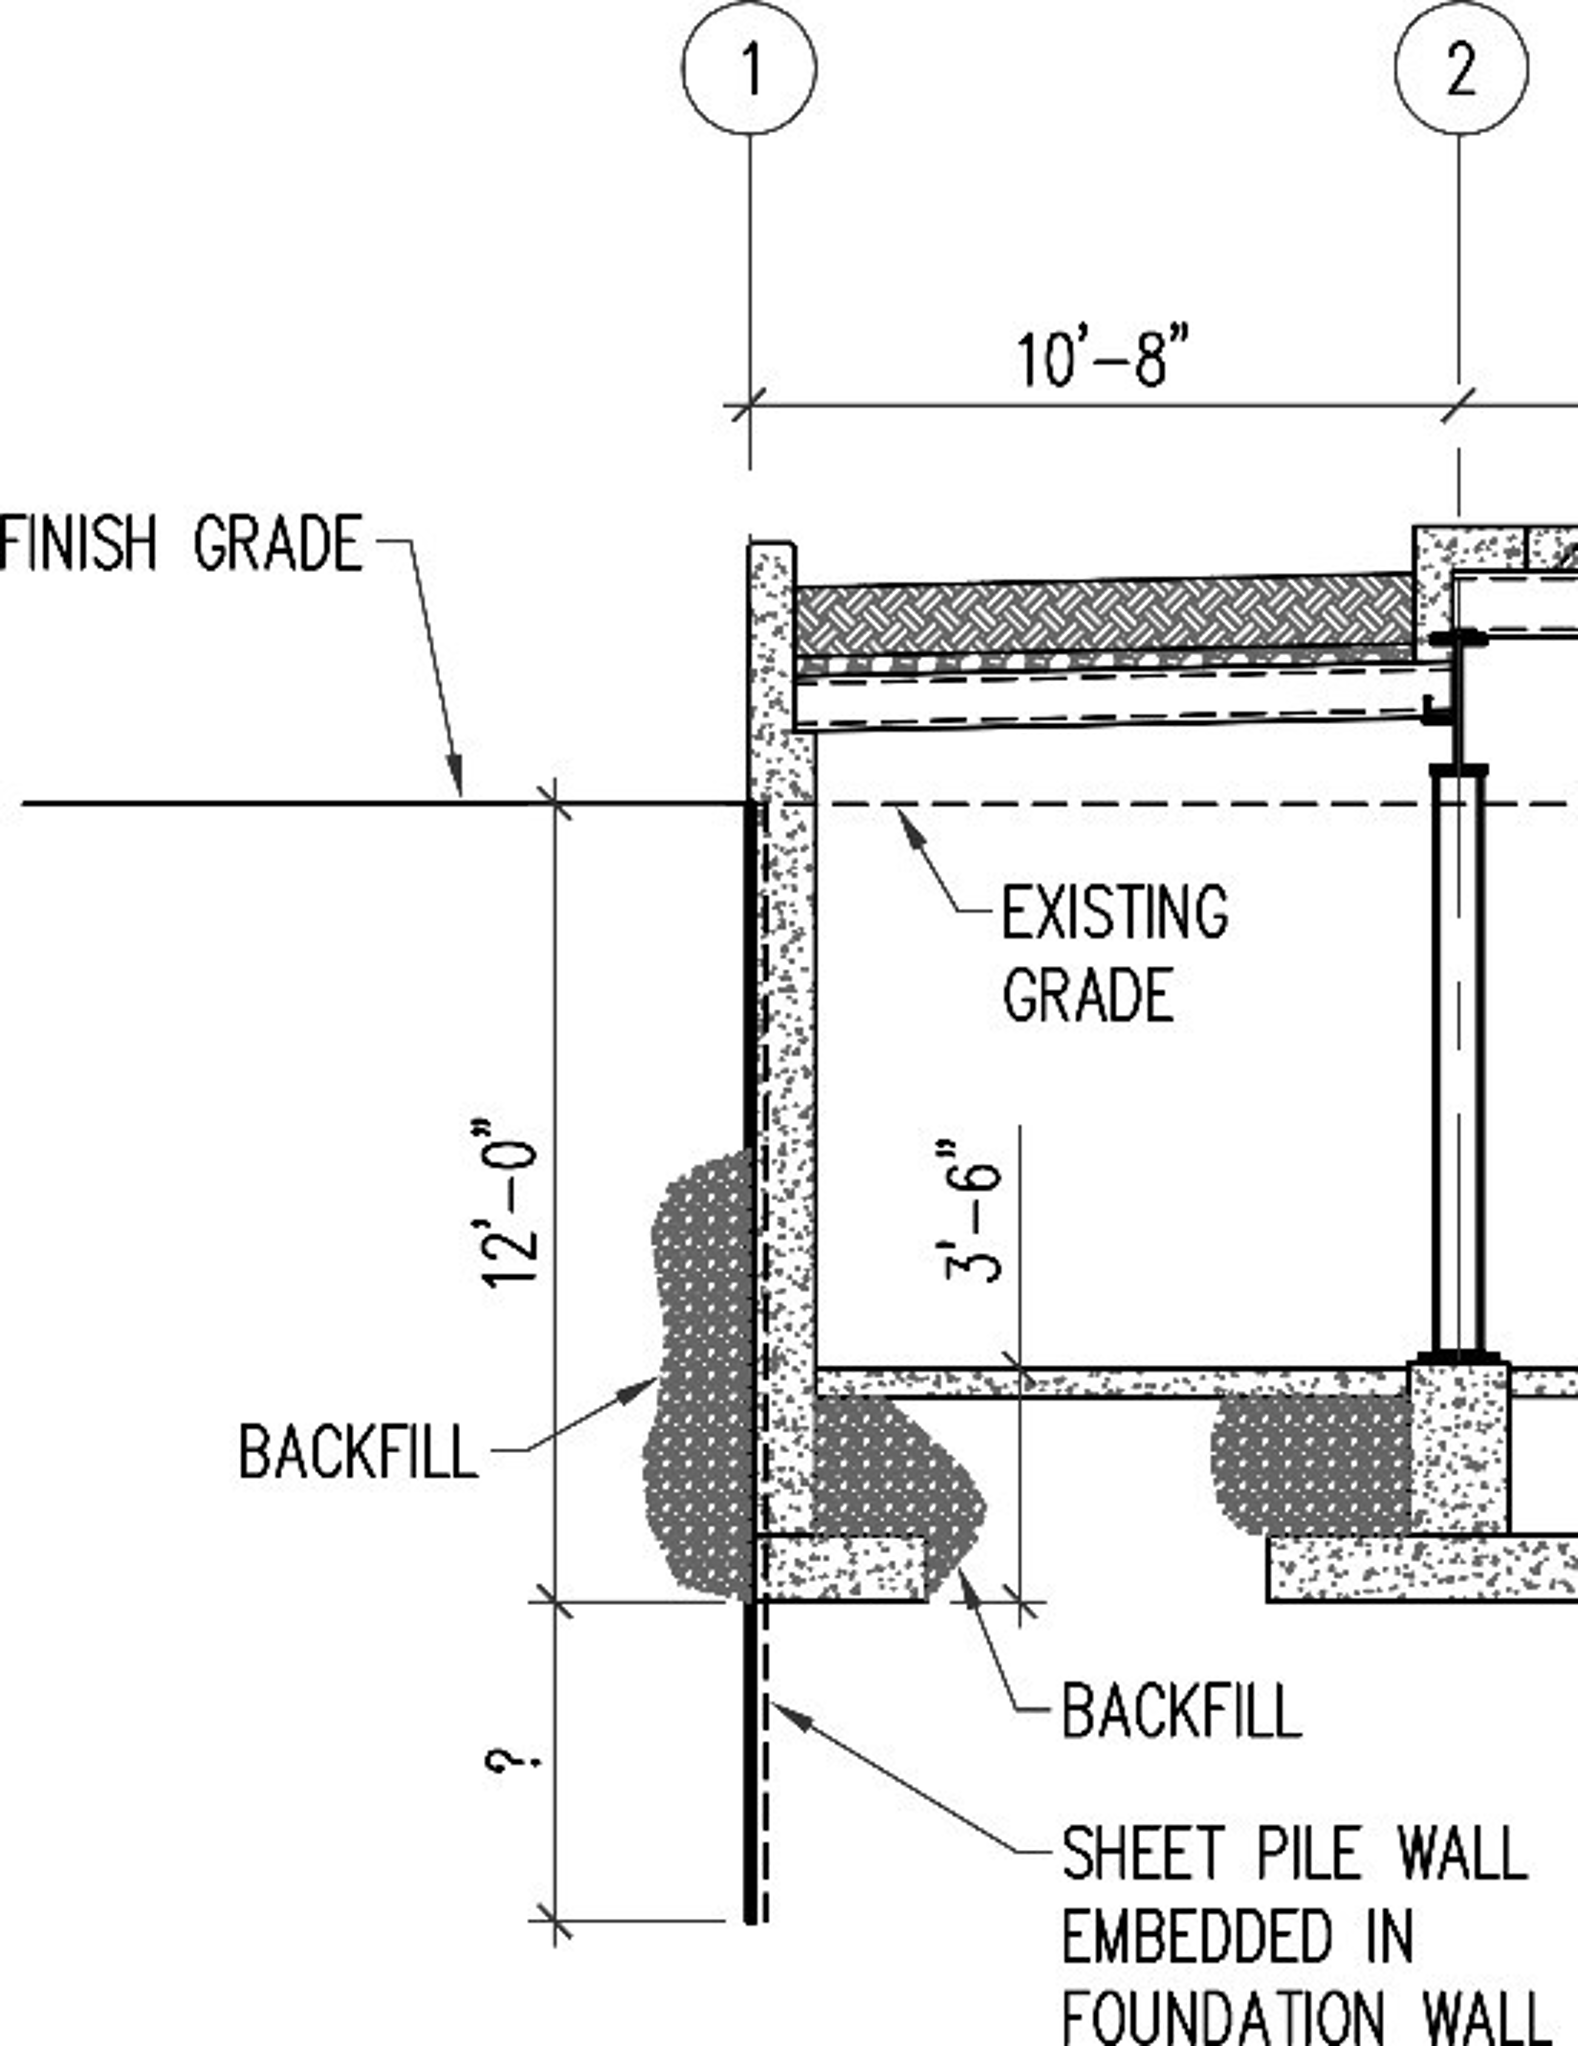 foundation wall diagram problem statement you are tasked with designing th chegg com  problem statement you are tasked with